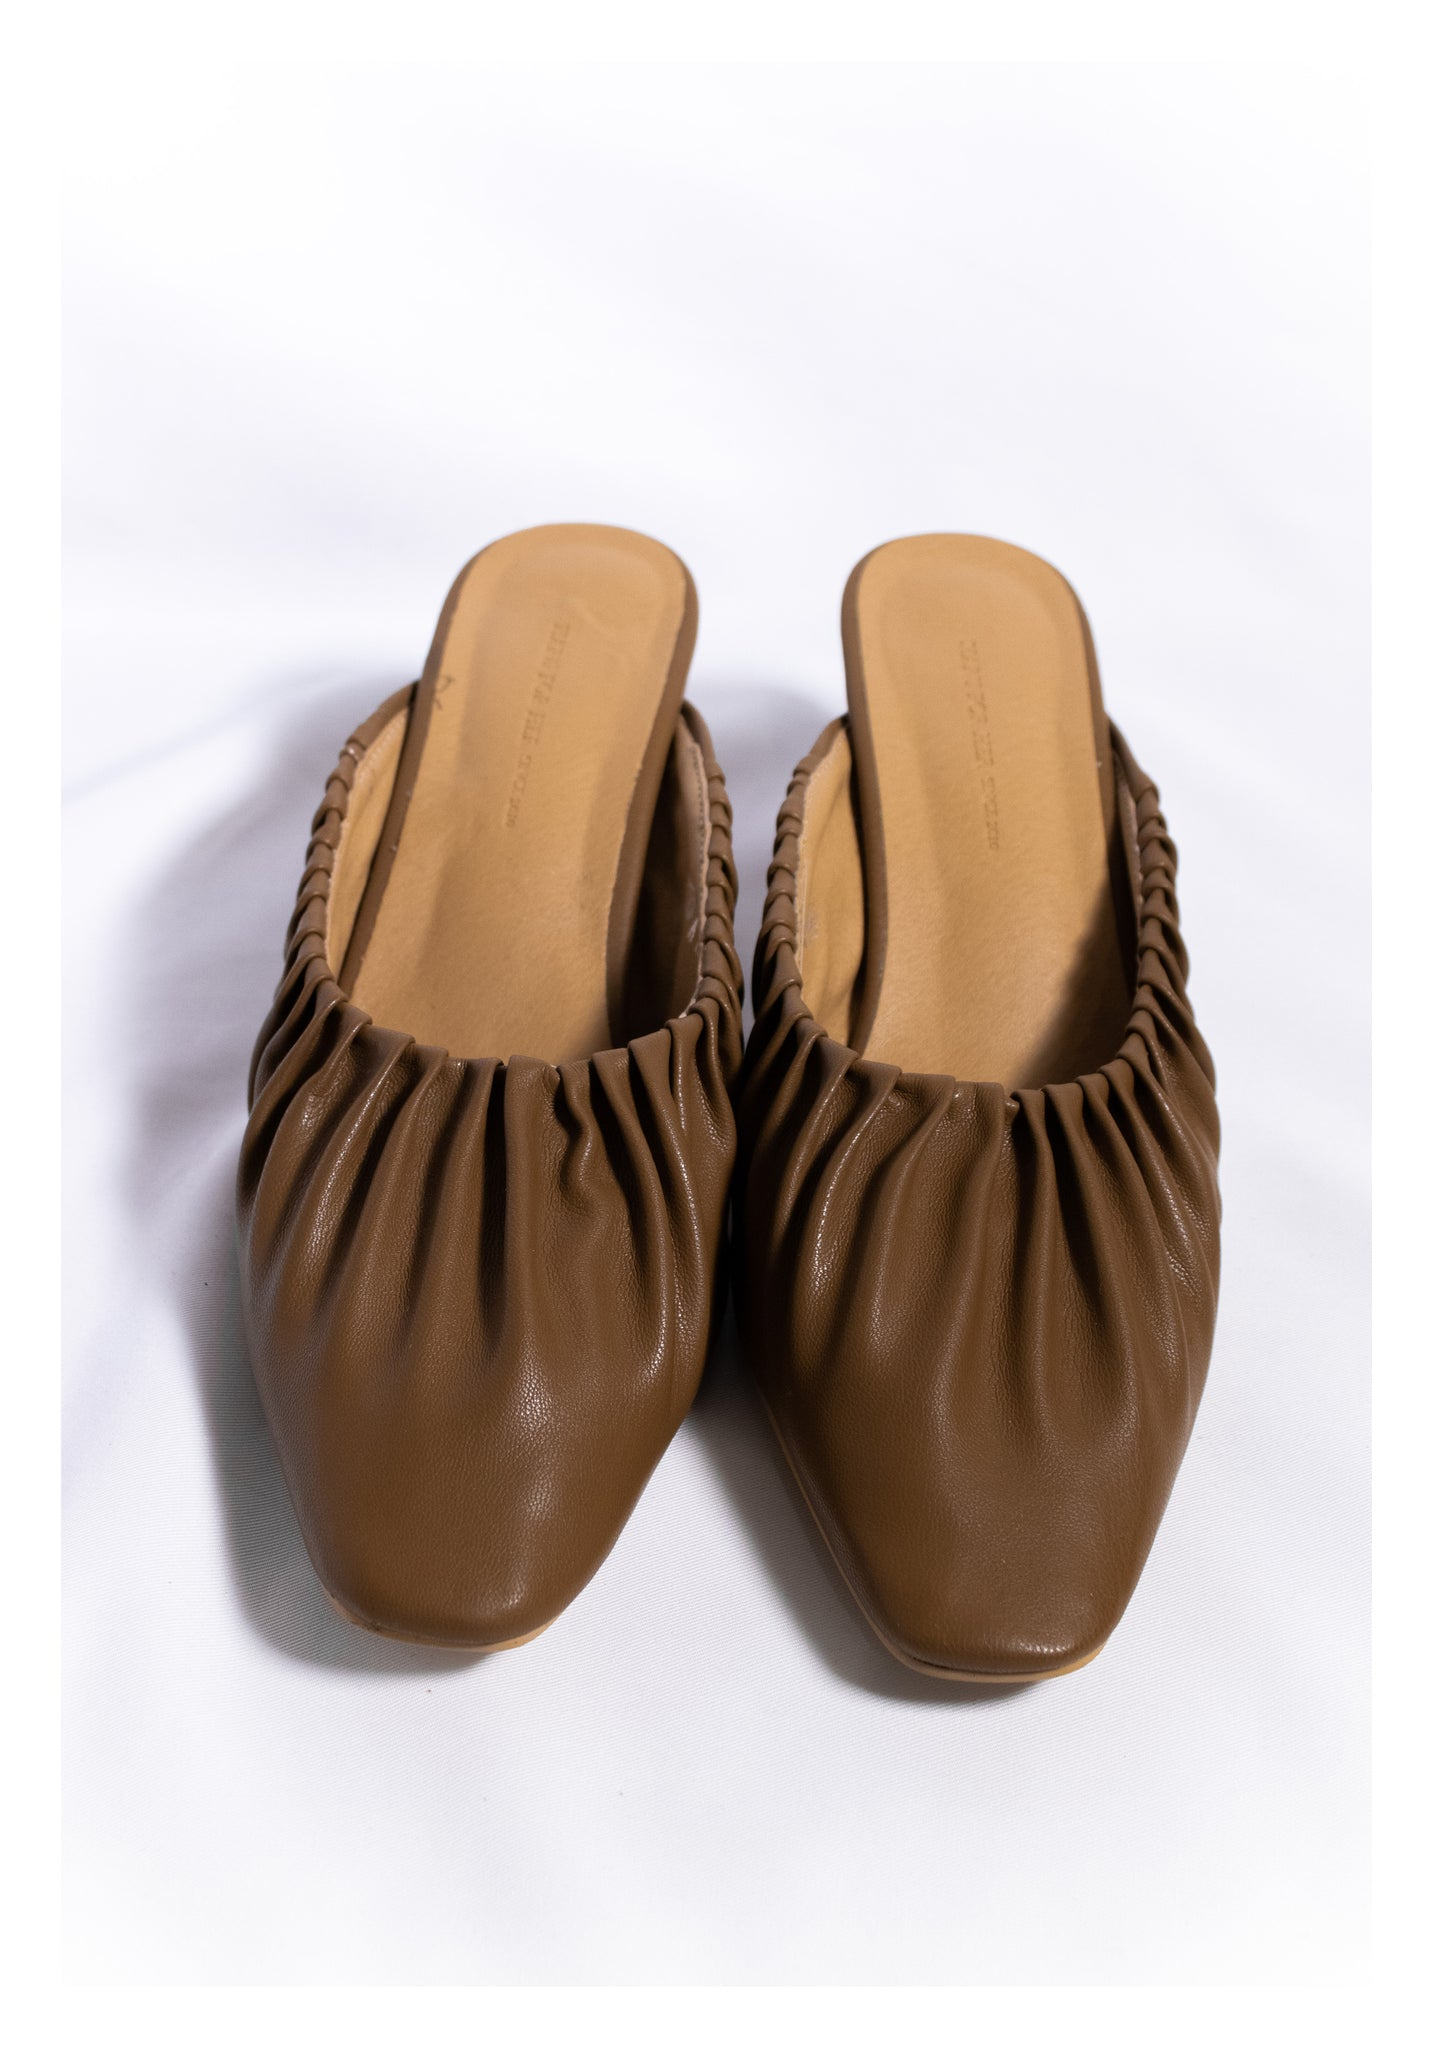 Sample Shoes - Anais Gathered Edge Mules Brown